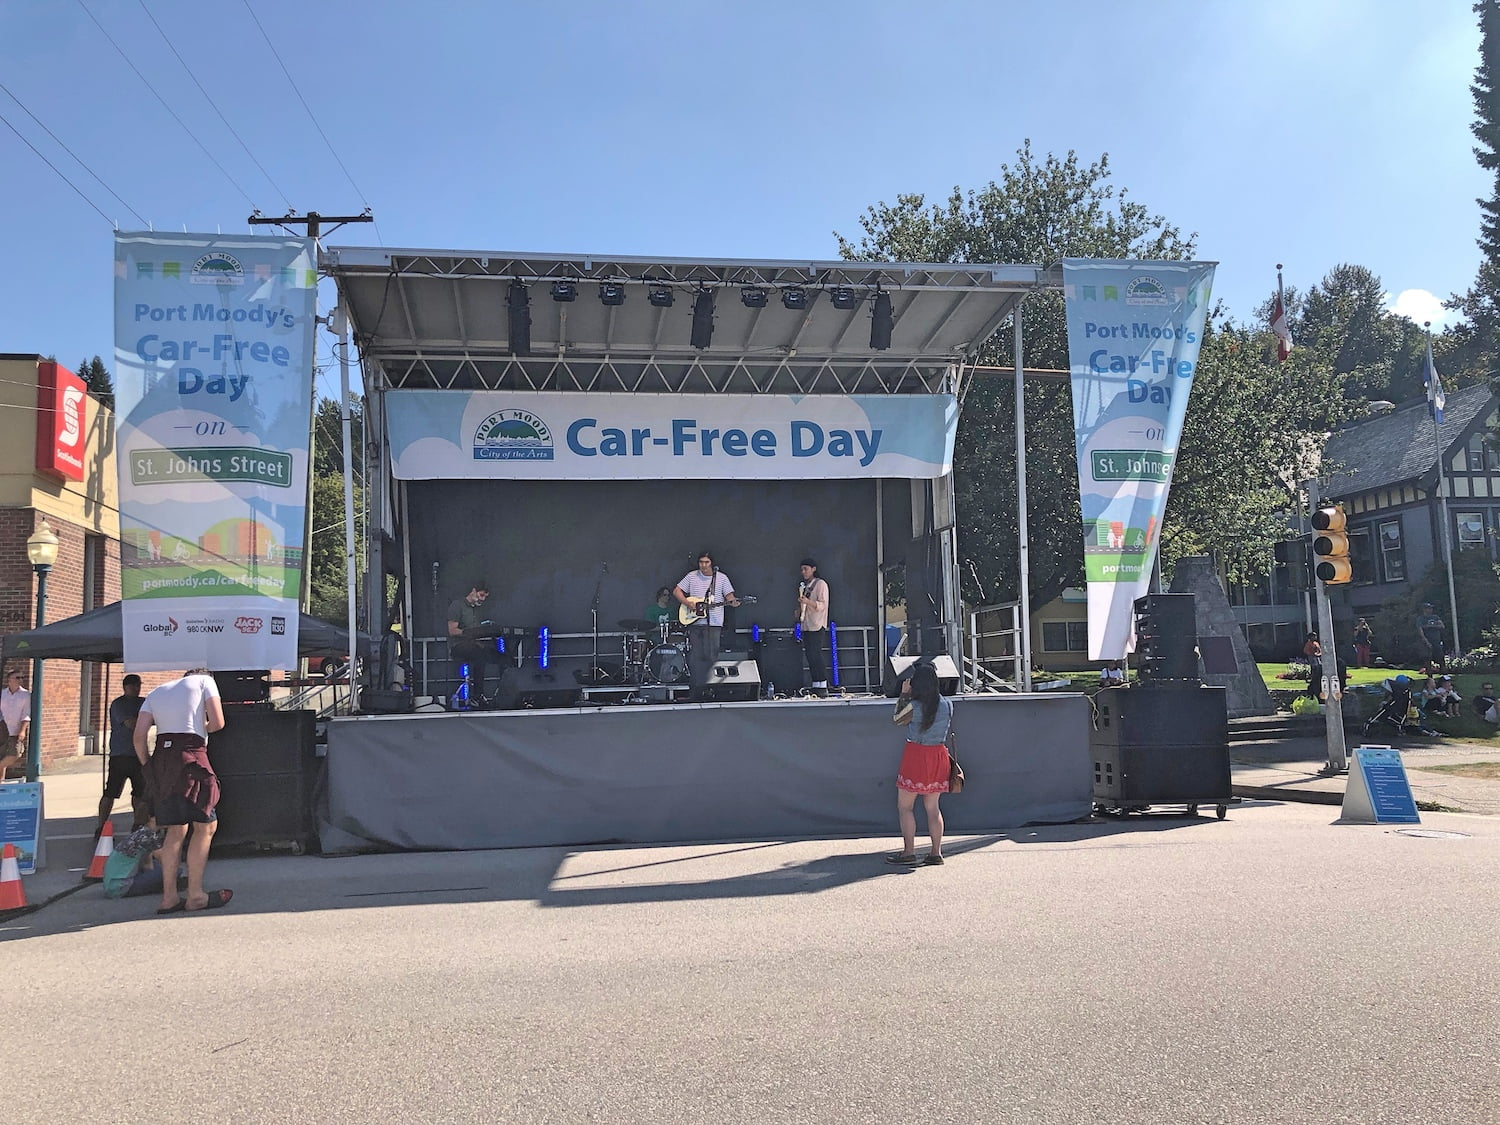 Car-Free Day Port Moody 2019 - Stage